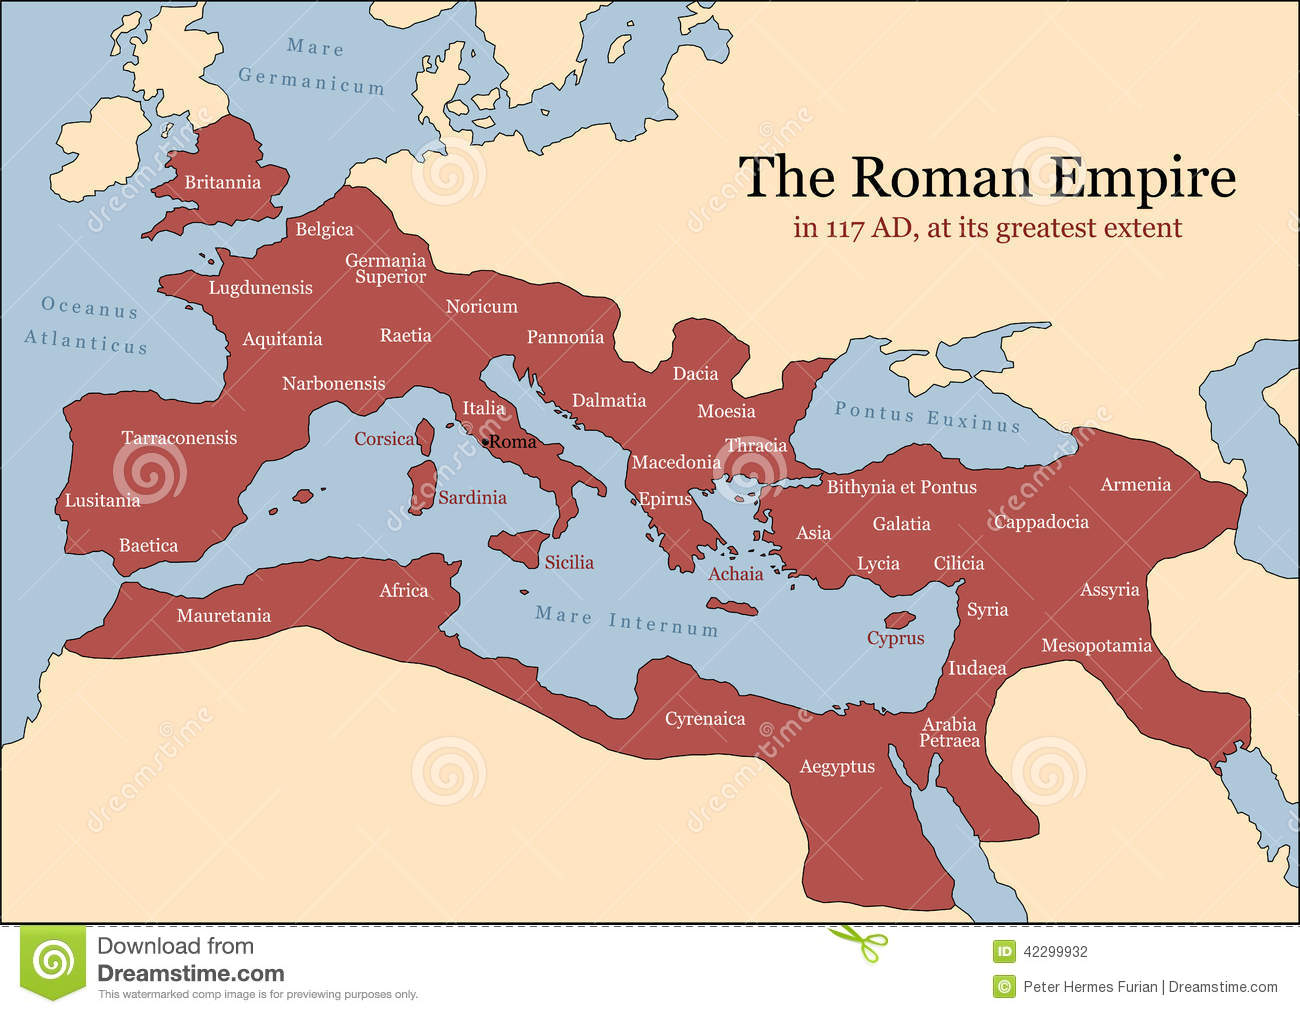 History of Russian Empire Thread Roman-empire-provinces-its-greatest-extent-ad-time-trajan-plus-principal-vector-illustration-42299932